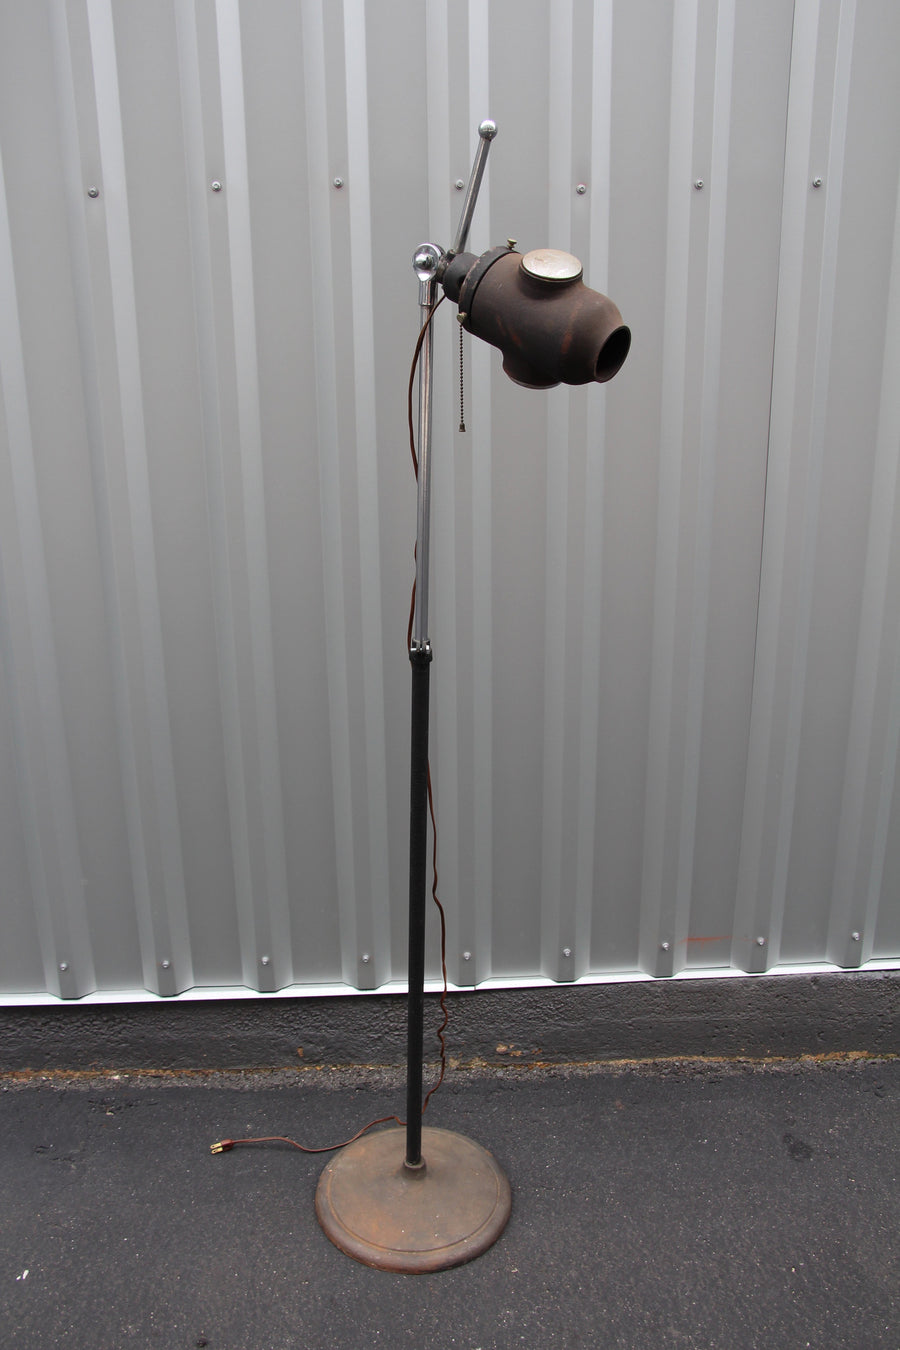 Vintage Industrial Stage Floor Lamp With Lens - Barefoot Dwelling